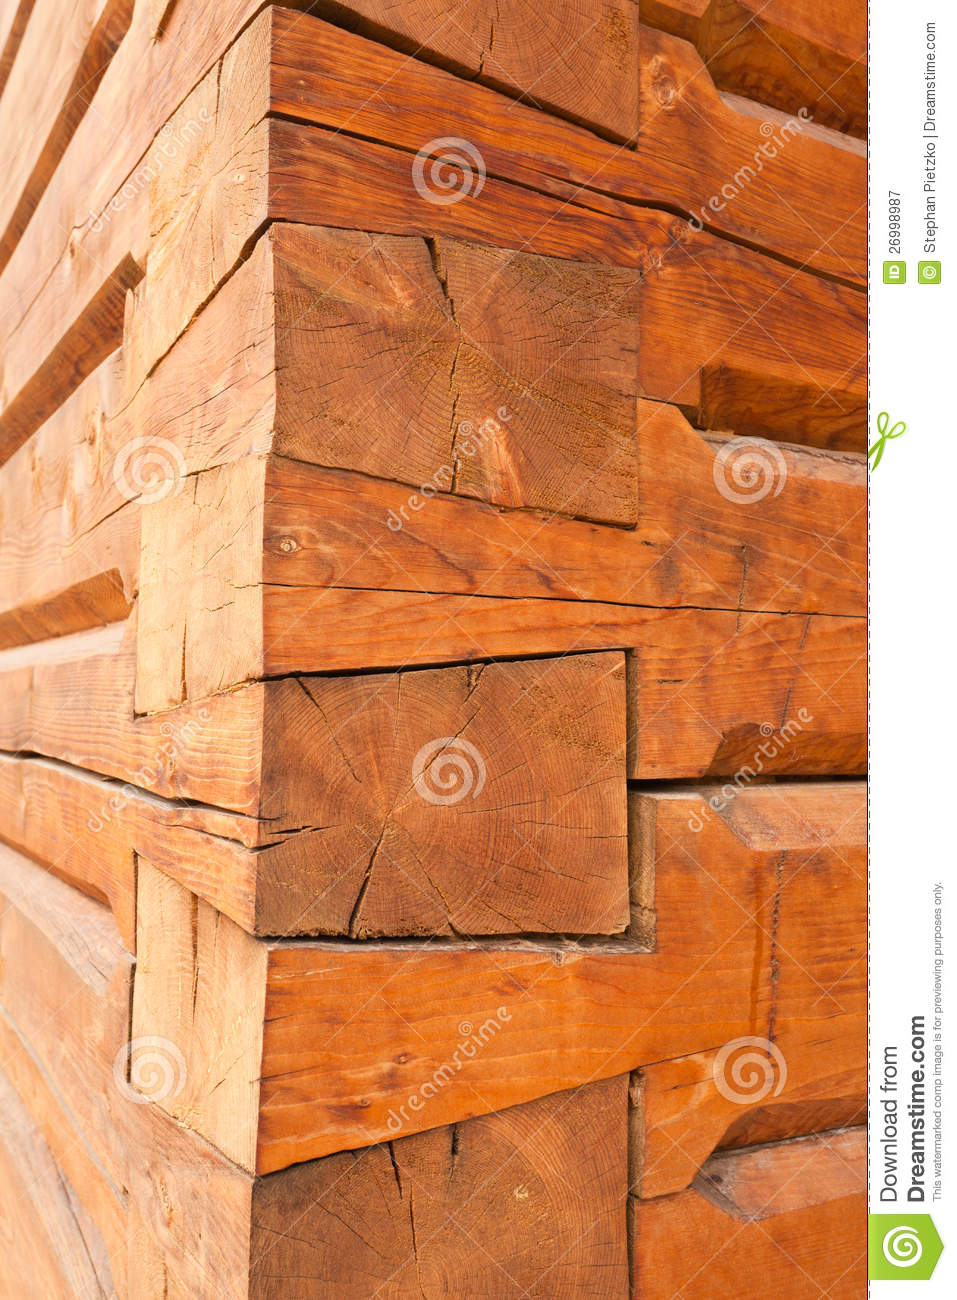 Fancy Timber Joints On The Corner Of Log Cabin Stock Image ...